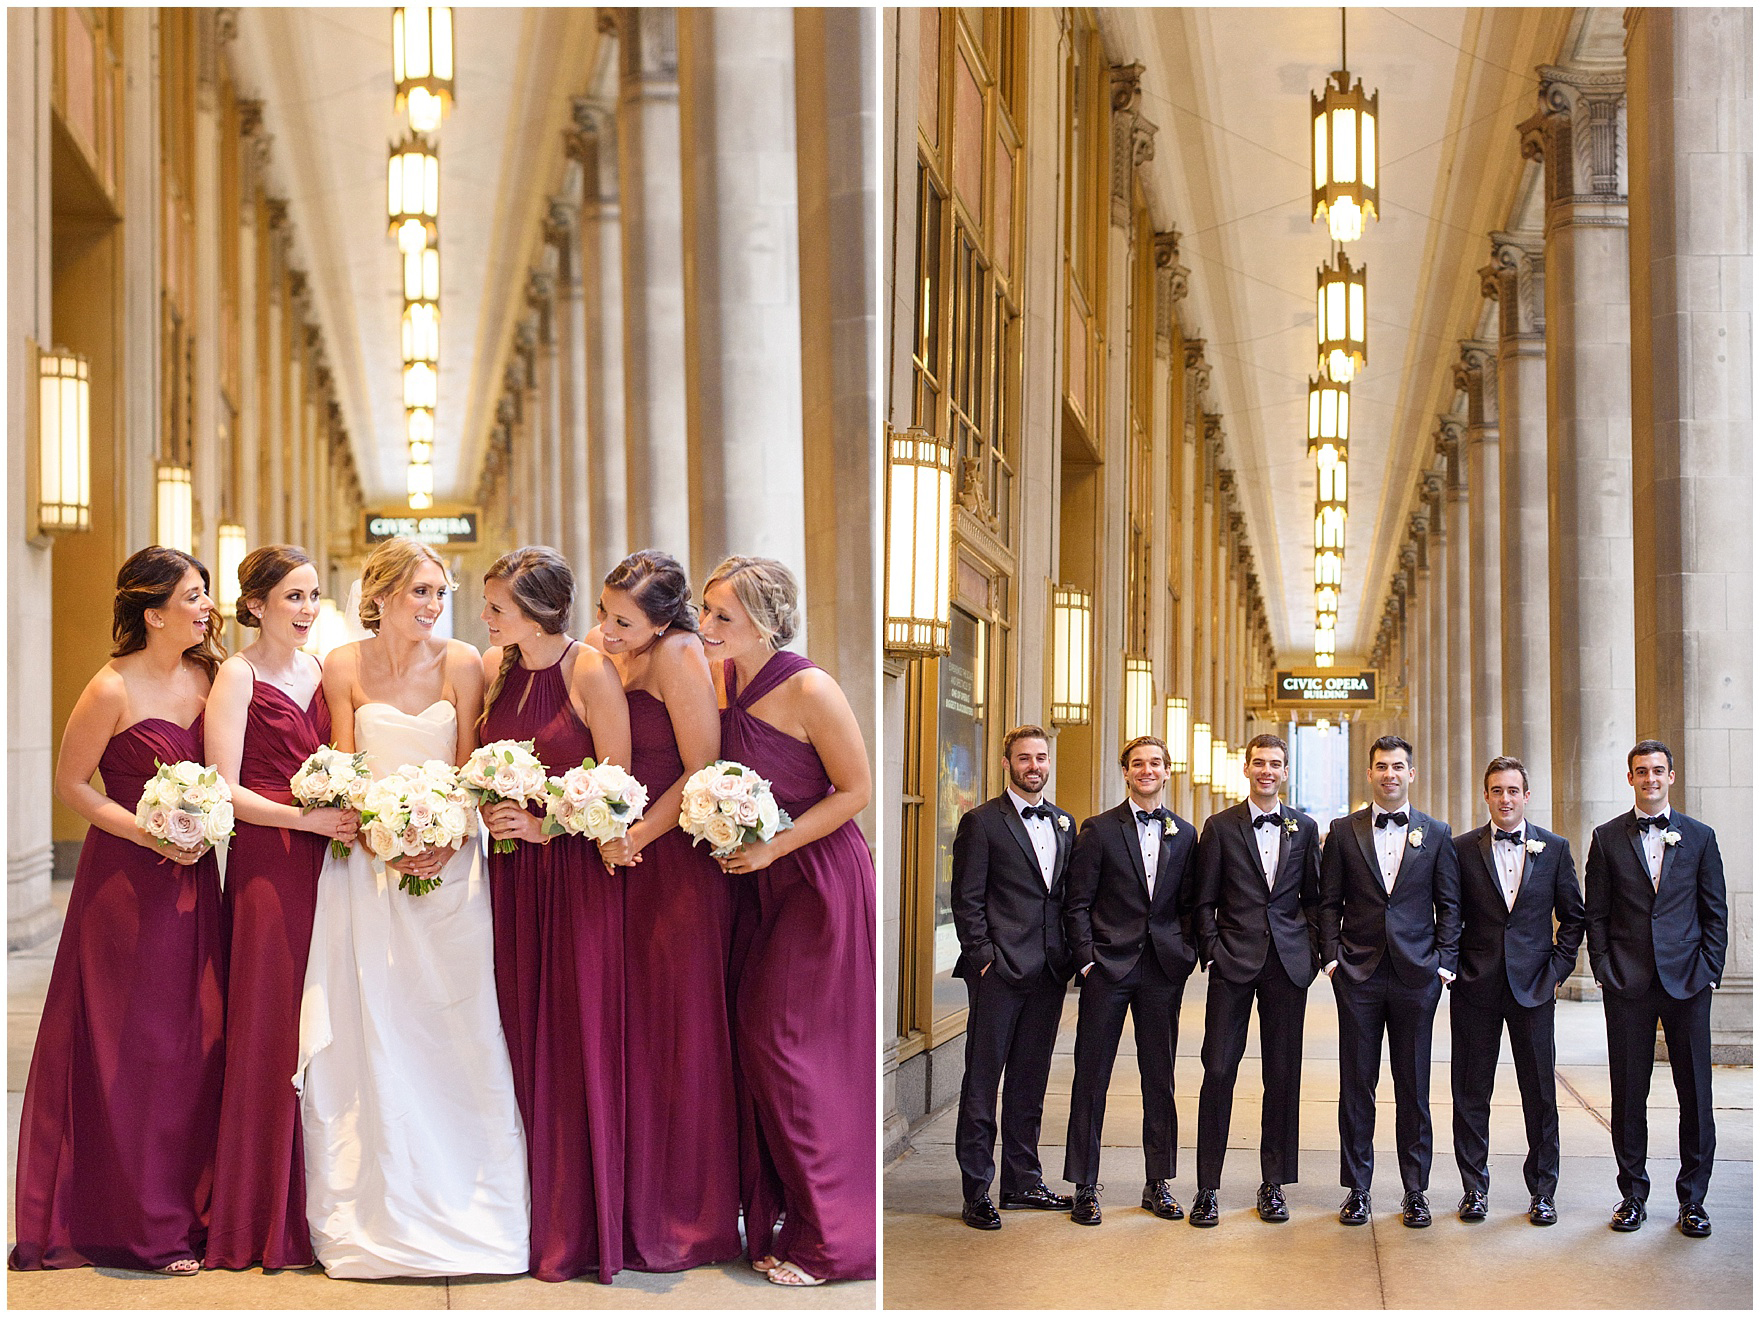 The bridesmaids and groomsmen pose at the Civic Opera House during a St. Clement Germania Place Chicago wedding.